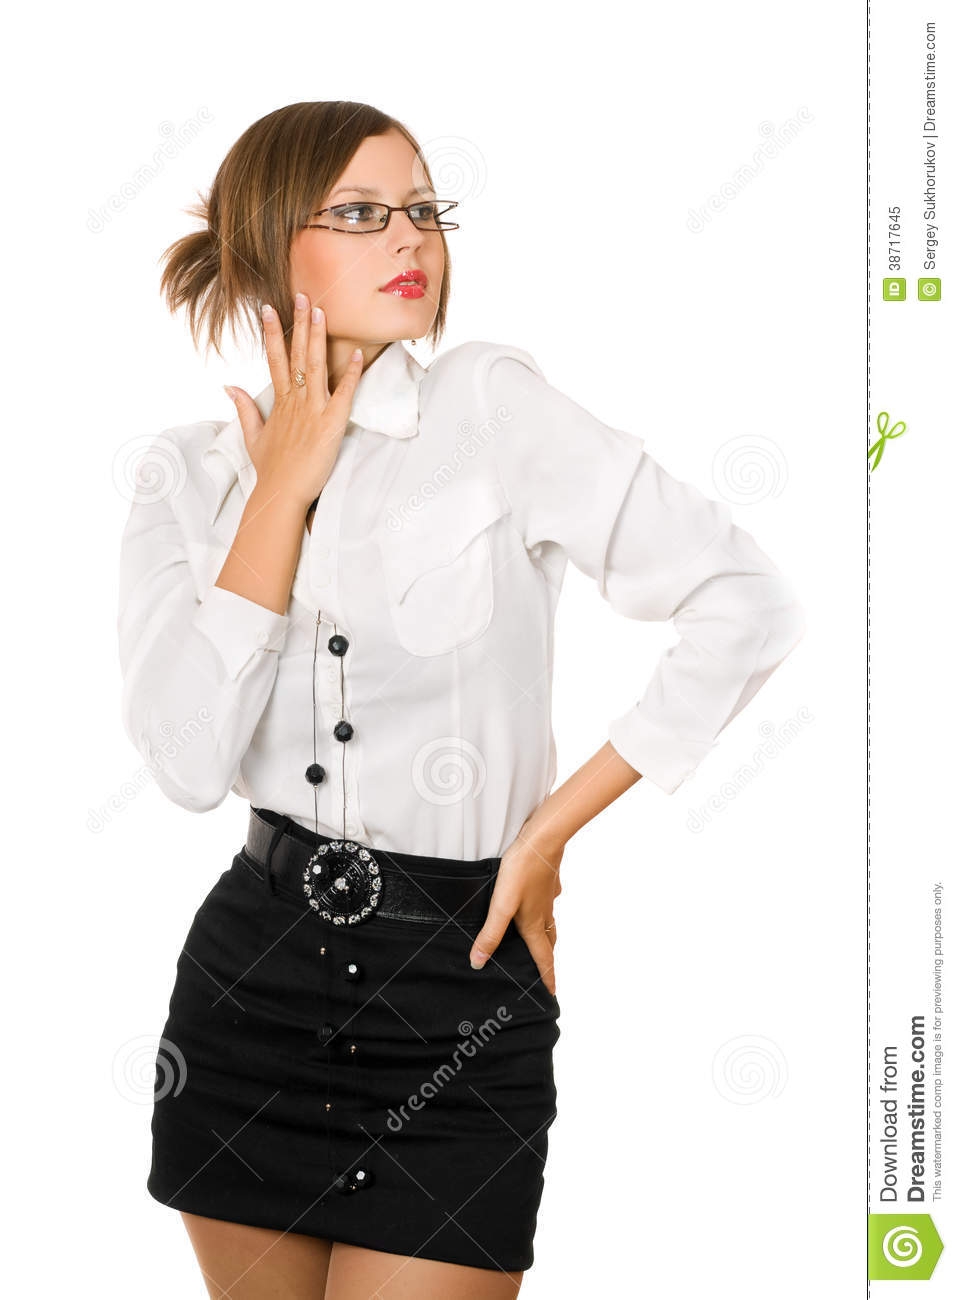 Seductive Girl In A Black Skirt And White Shirt Stock